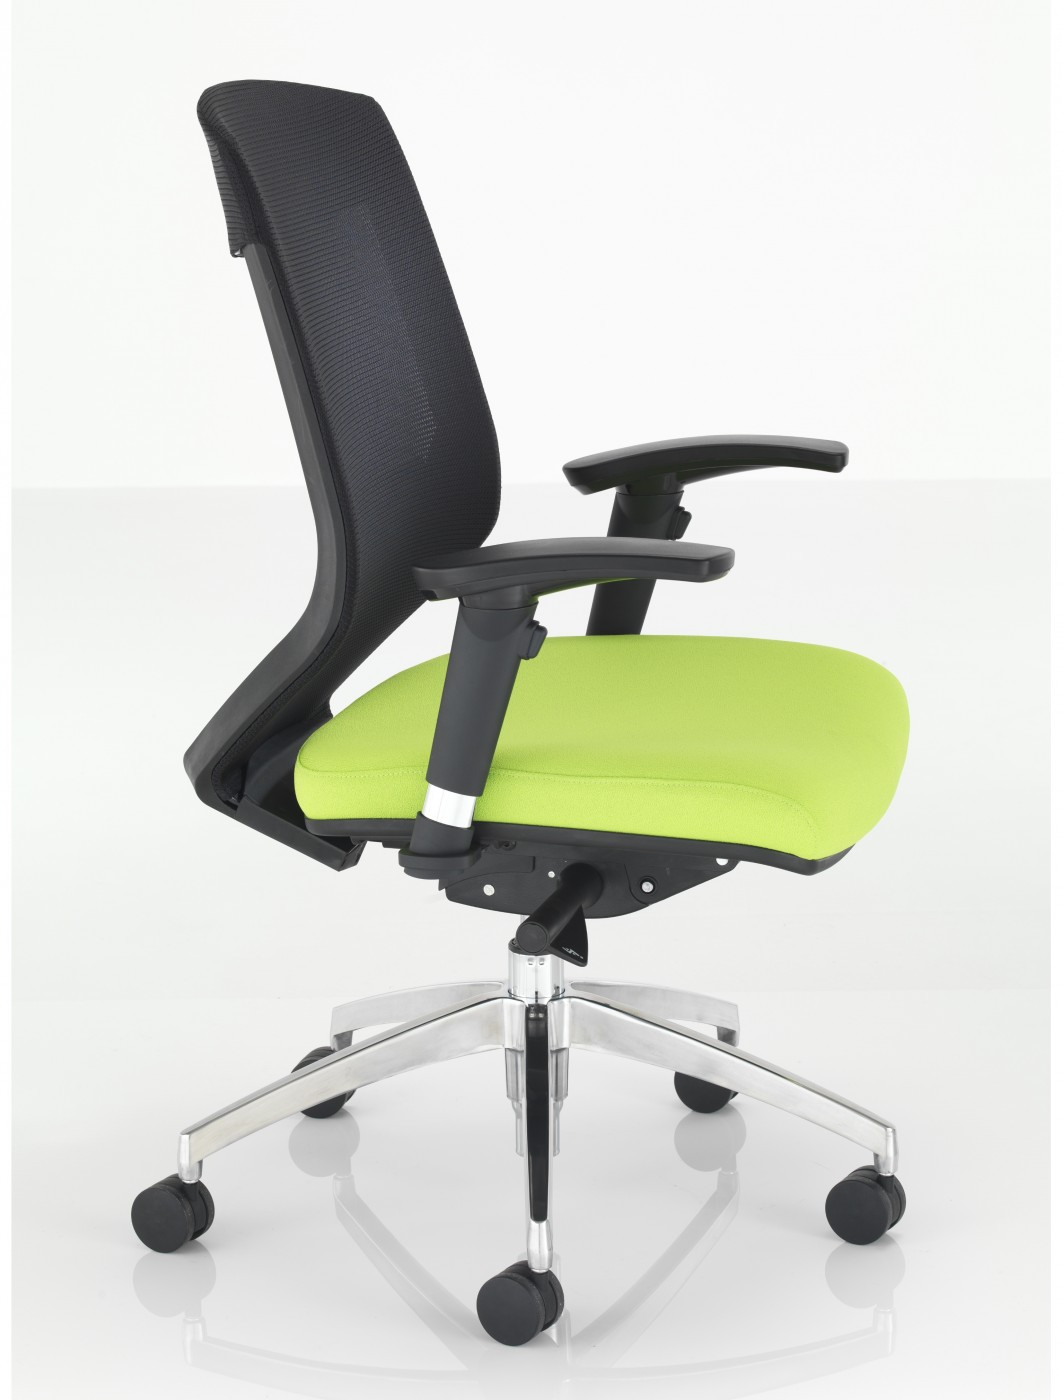 all sharp furniture fmt usm black resmode wid op george mesh chair hei default qlt p pd office view